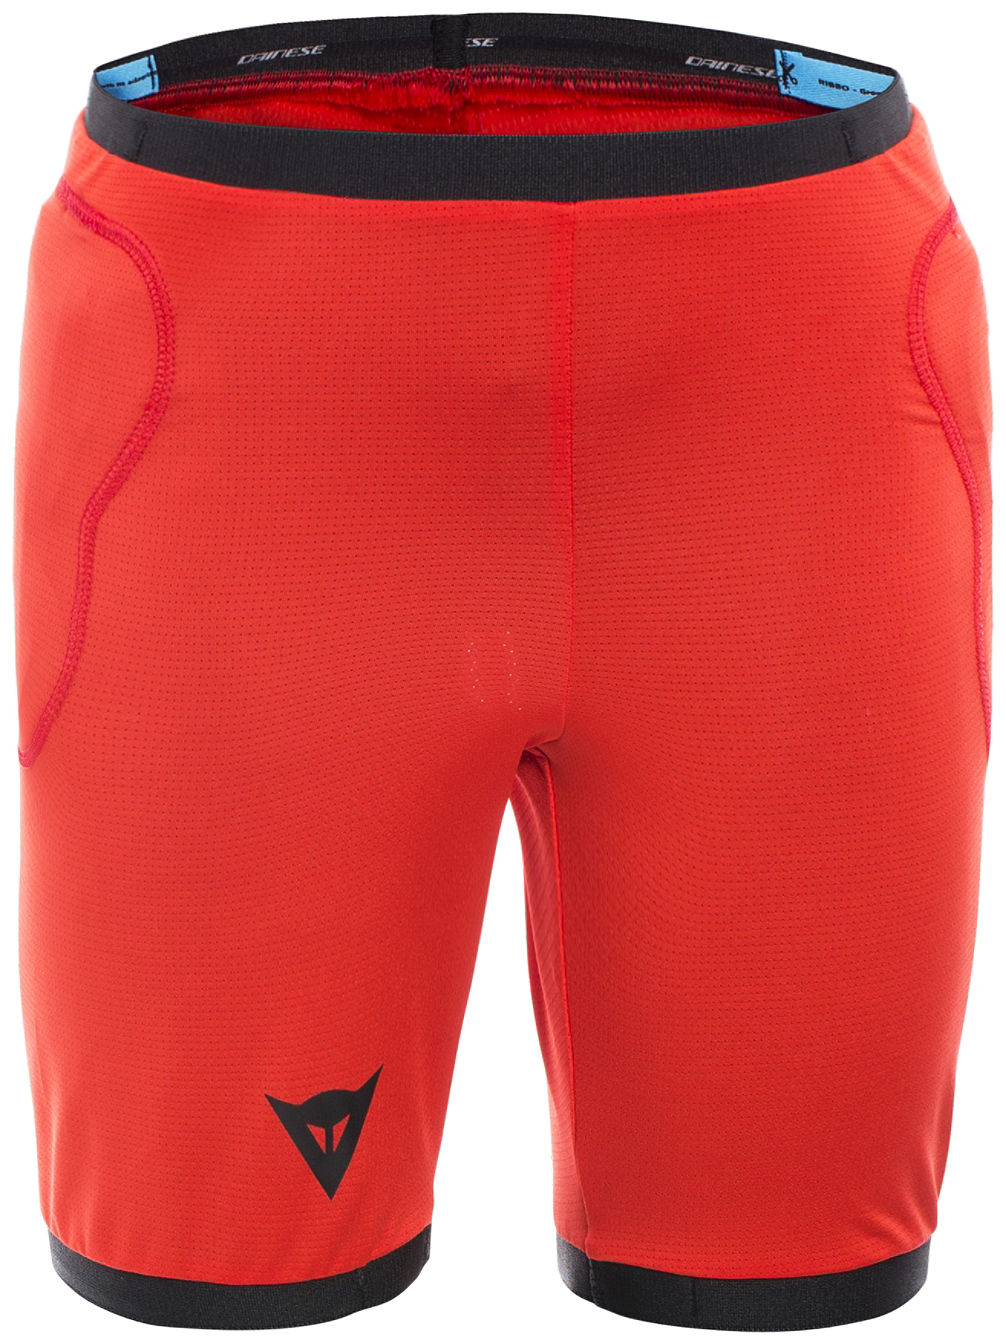 Scarabeo Safety Shorts Youth